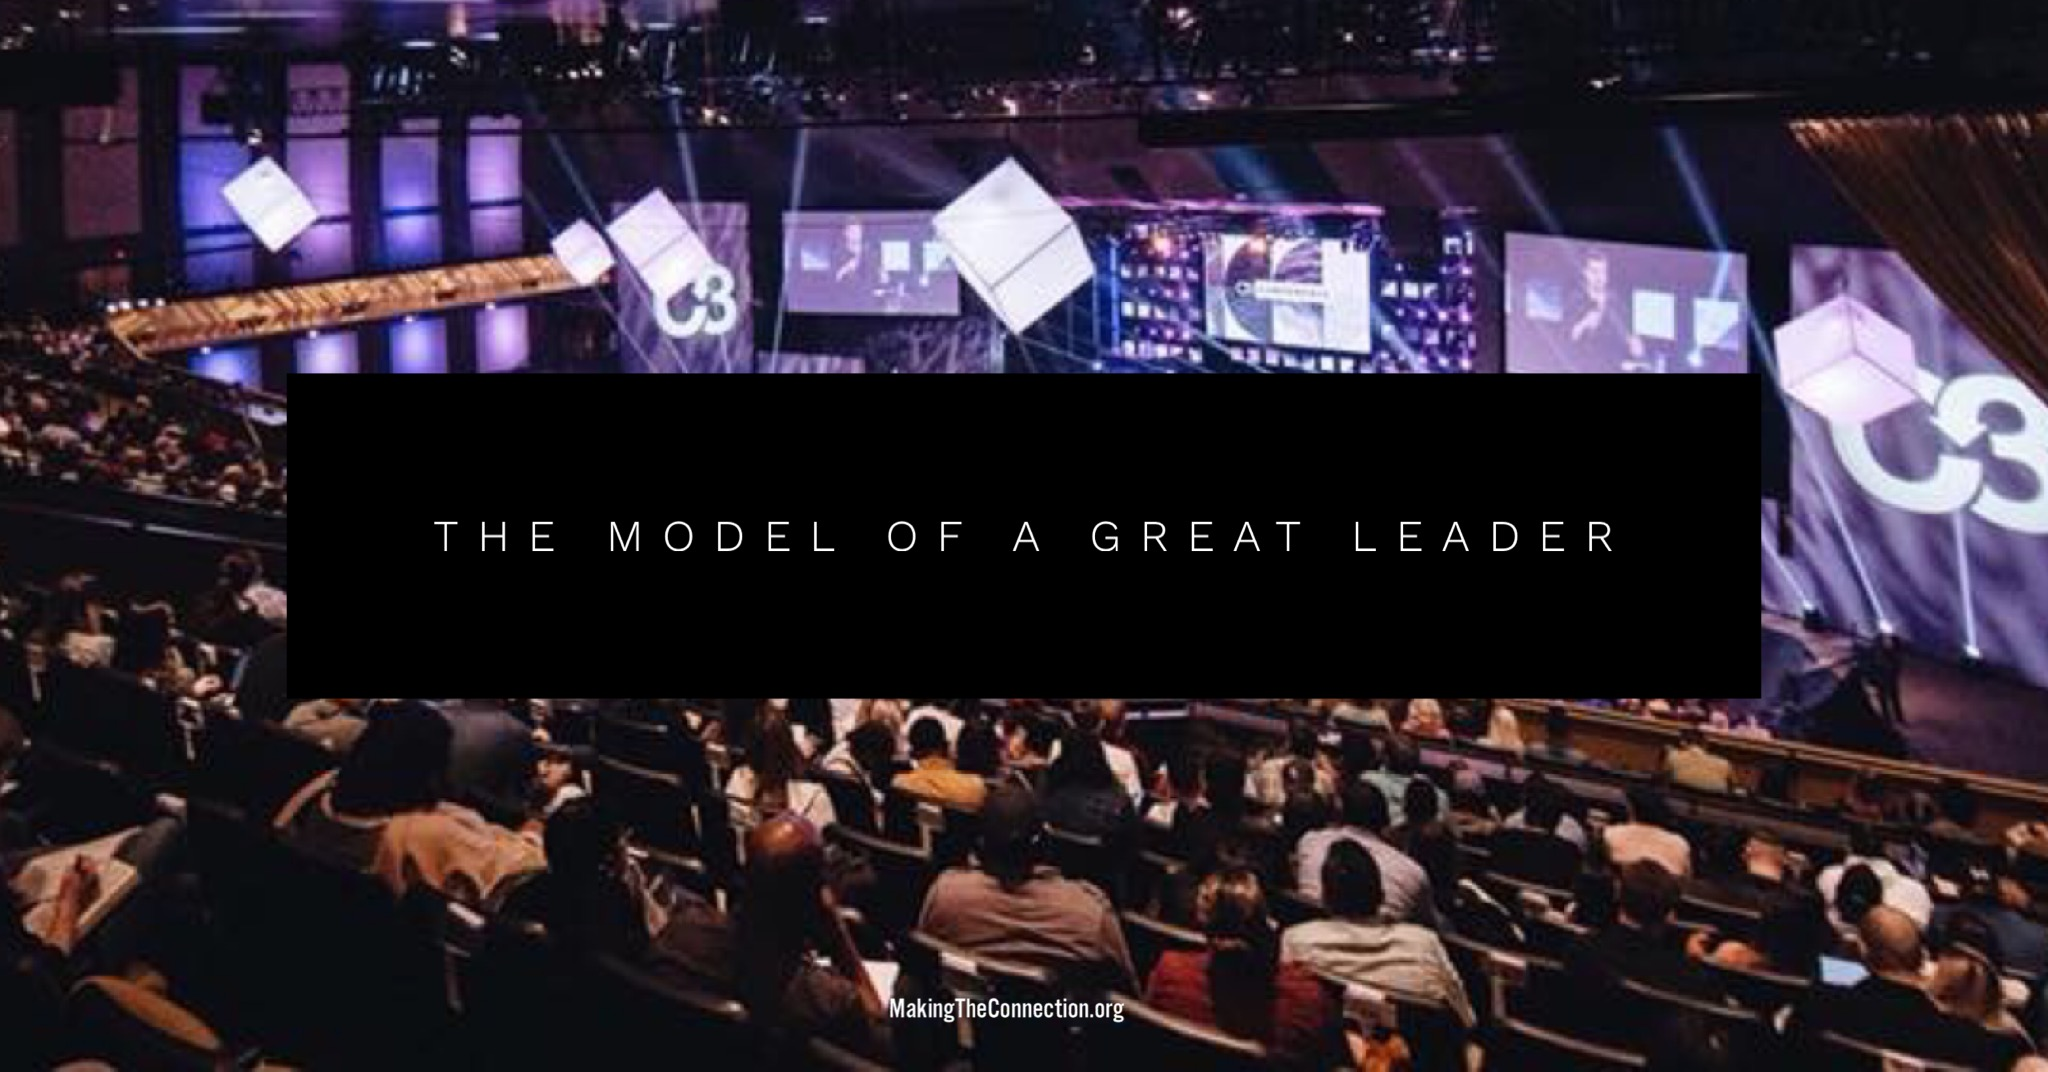 The model of a great leader